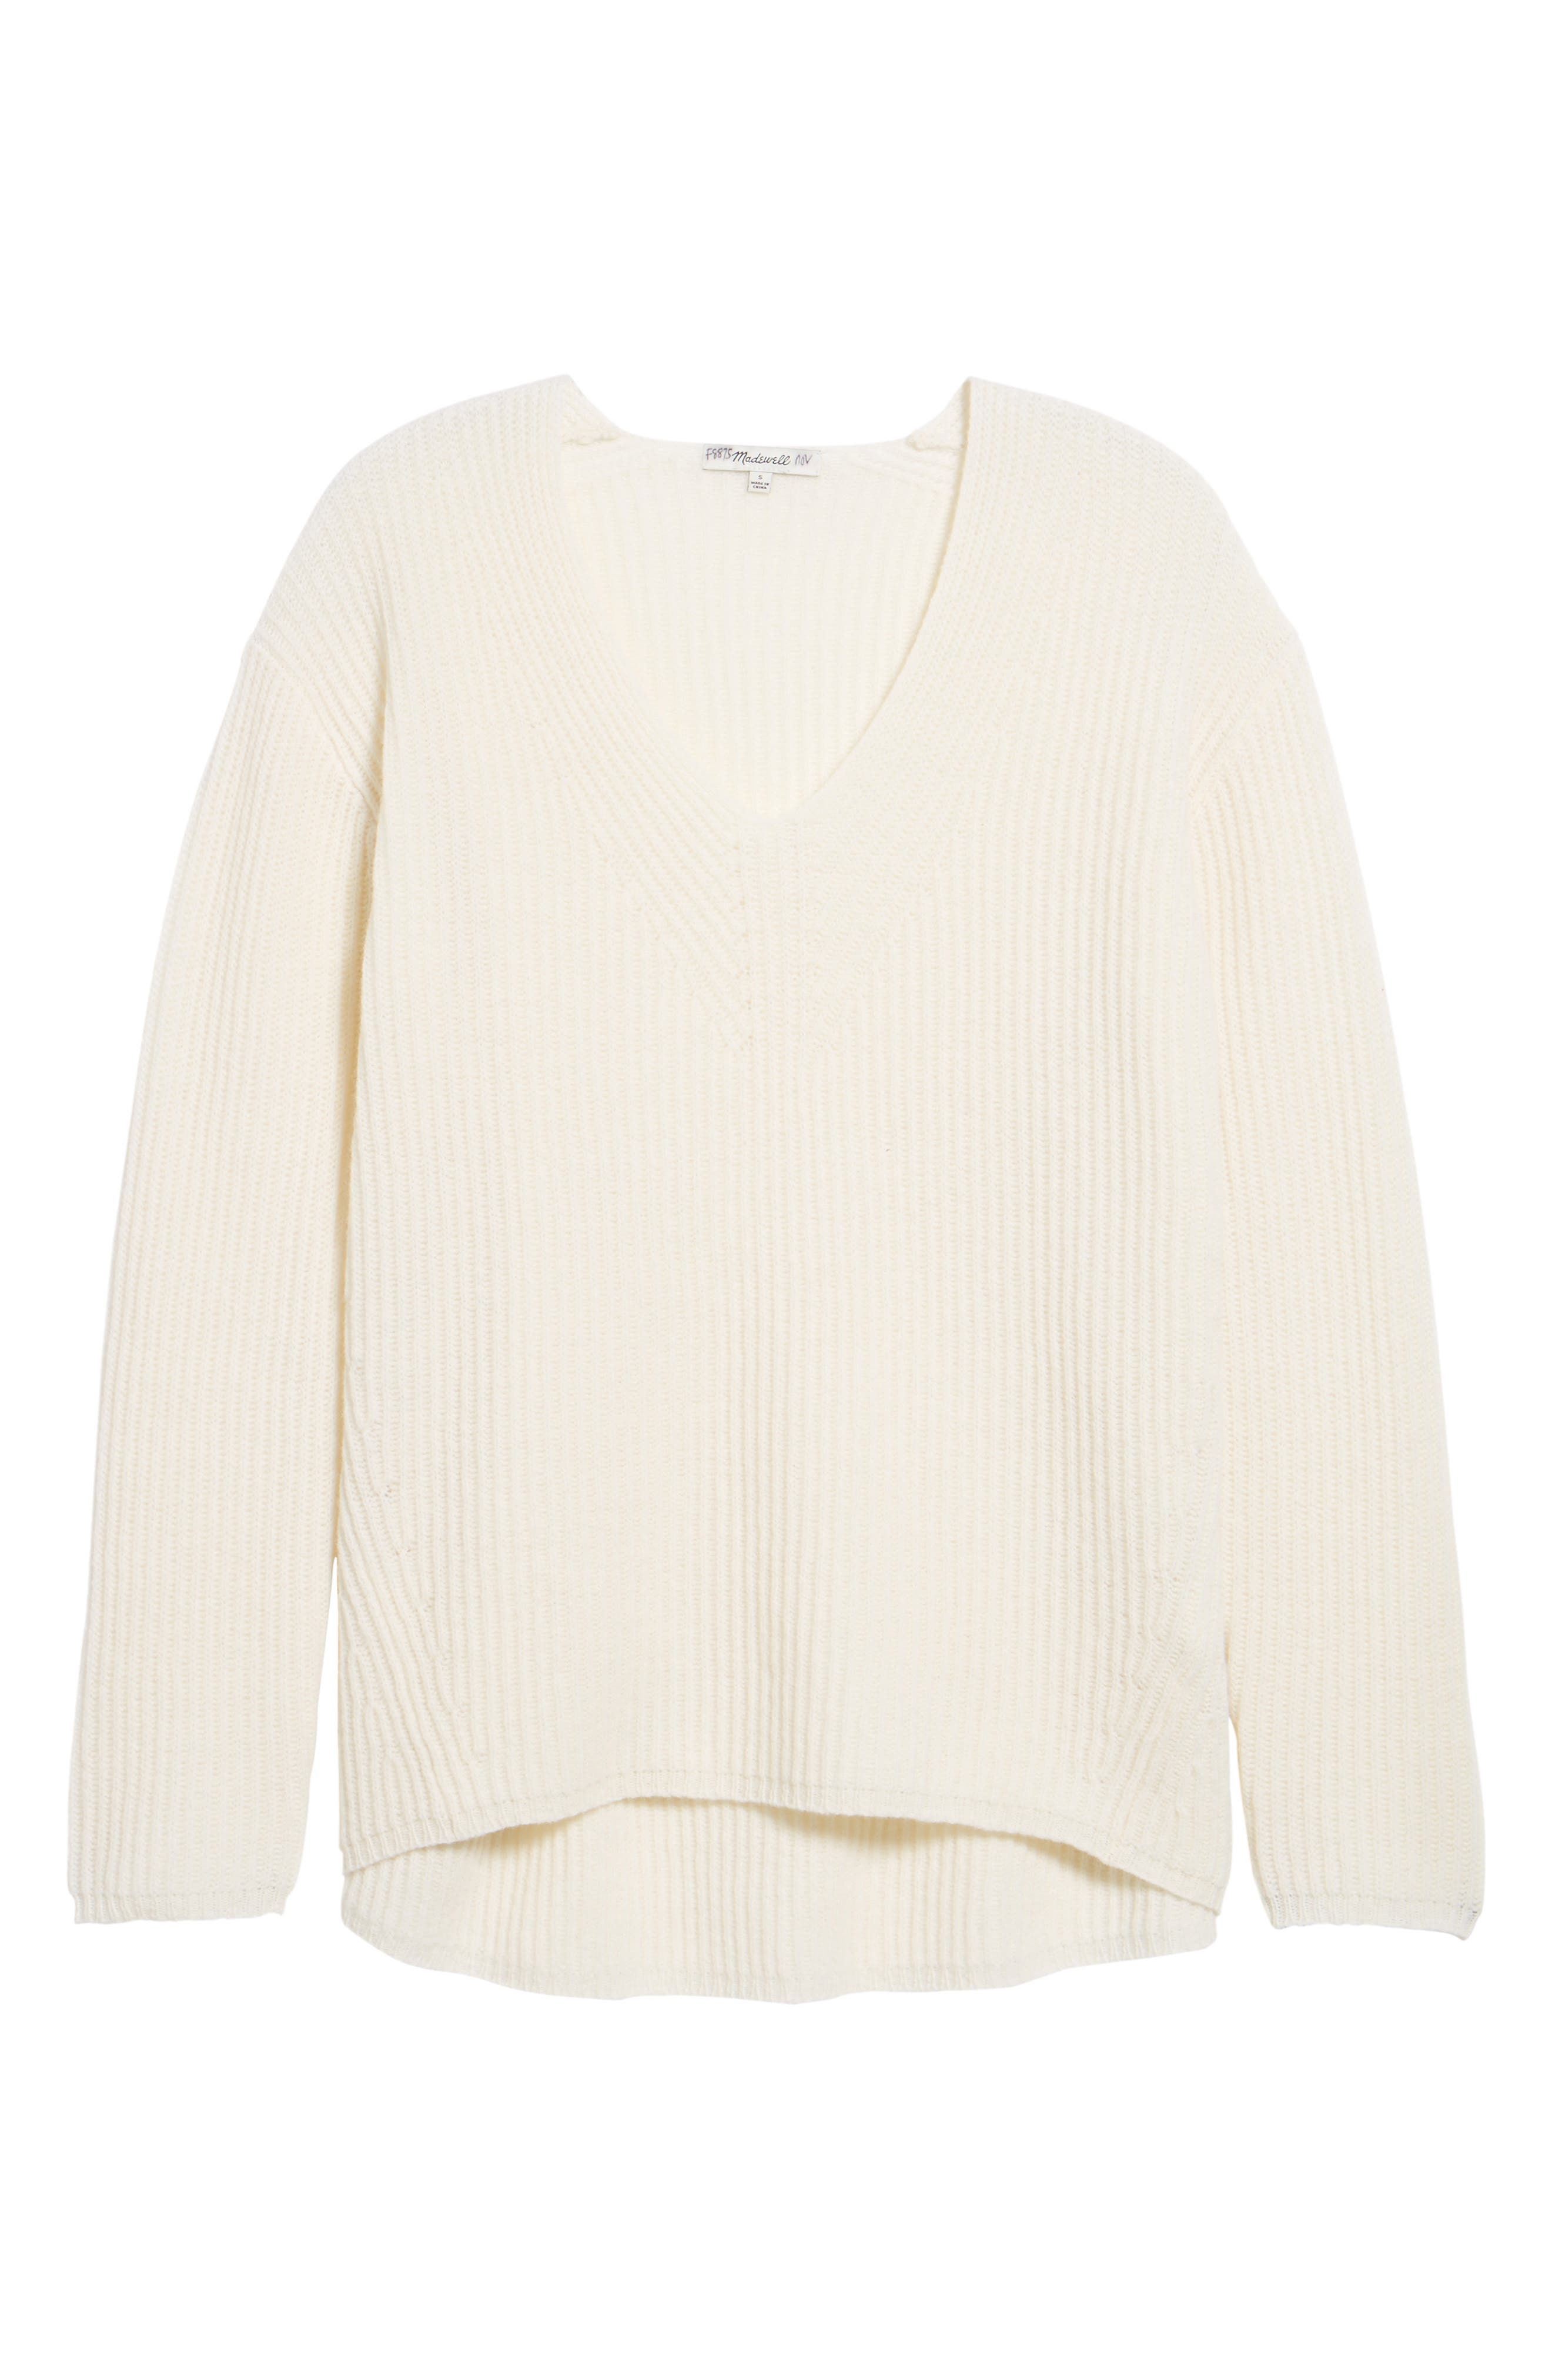 Main Image - Madewell Woodside Pullover Sweater